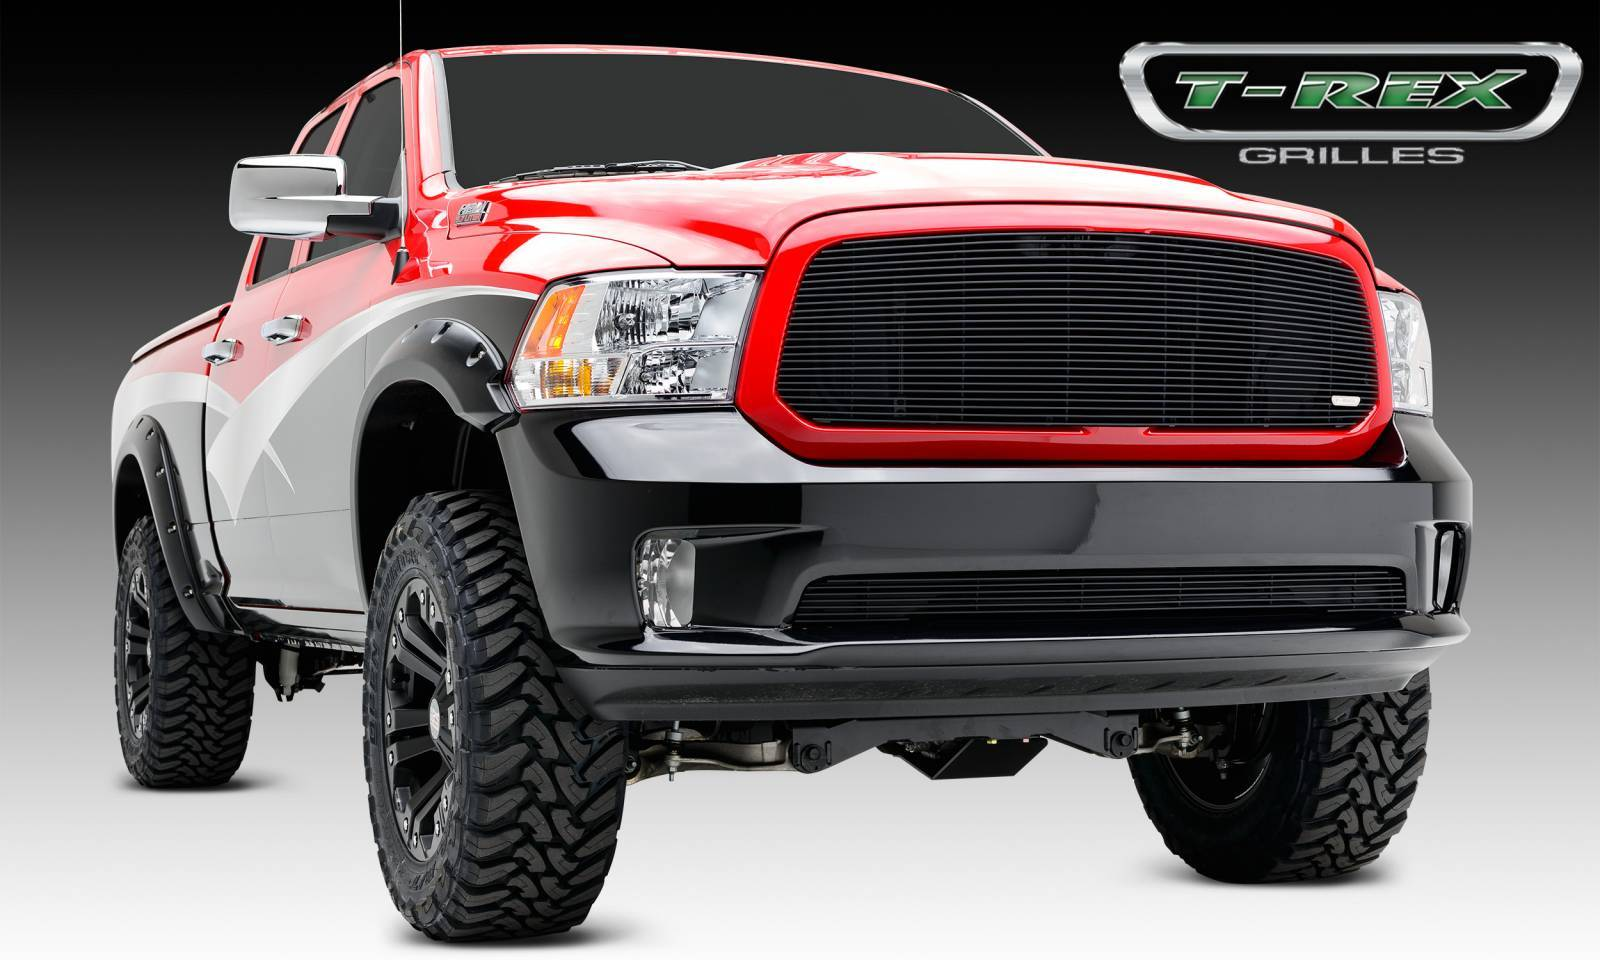 T-REX Grilles - Dodge Ram 1500 & Sport, Billet Grille, Main, Insert , 1 Pc, Black Powder Coated Aluminum Bars, Fits all models. - Pt # 20458B